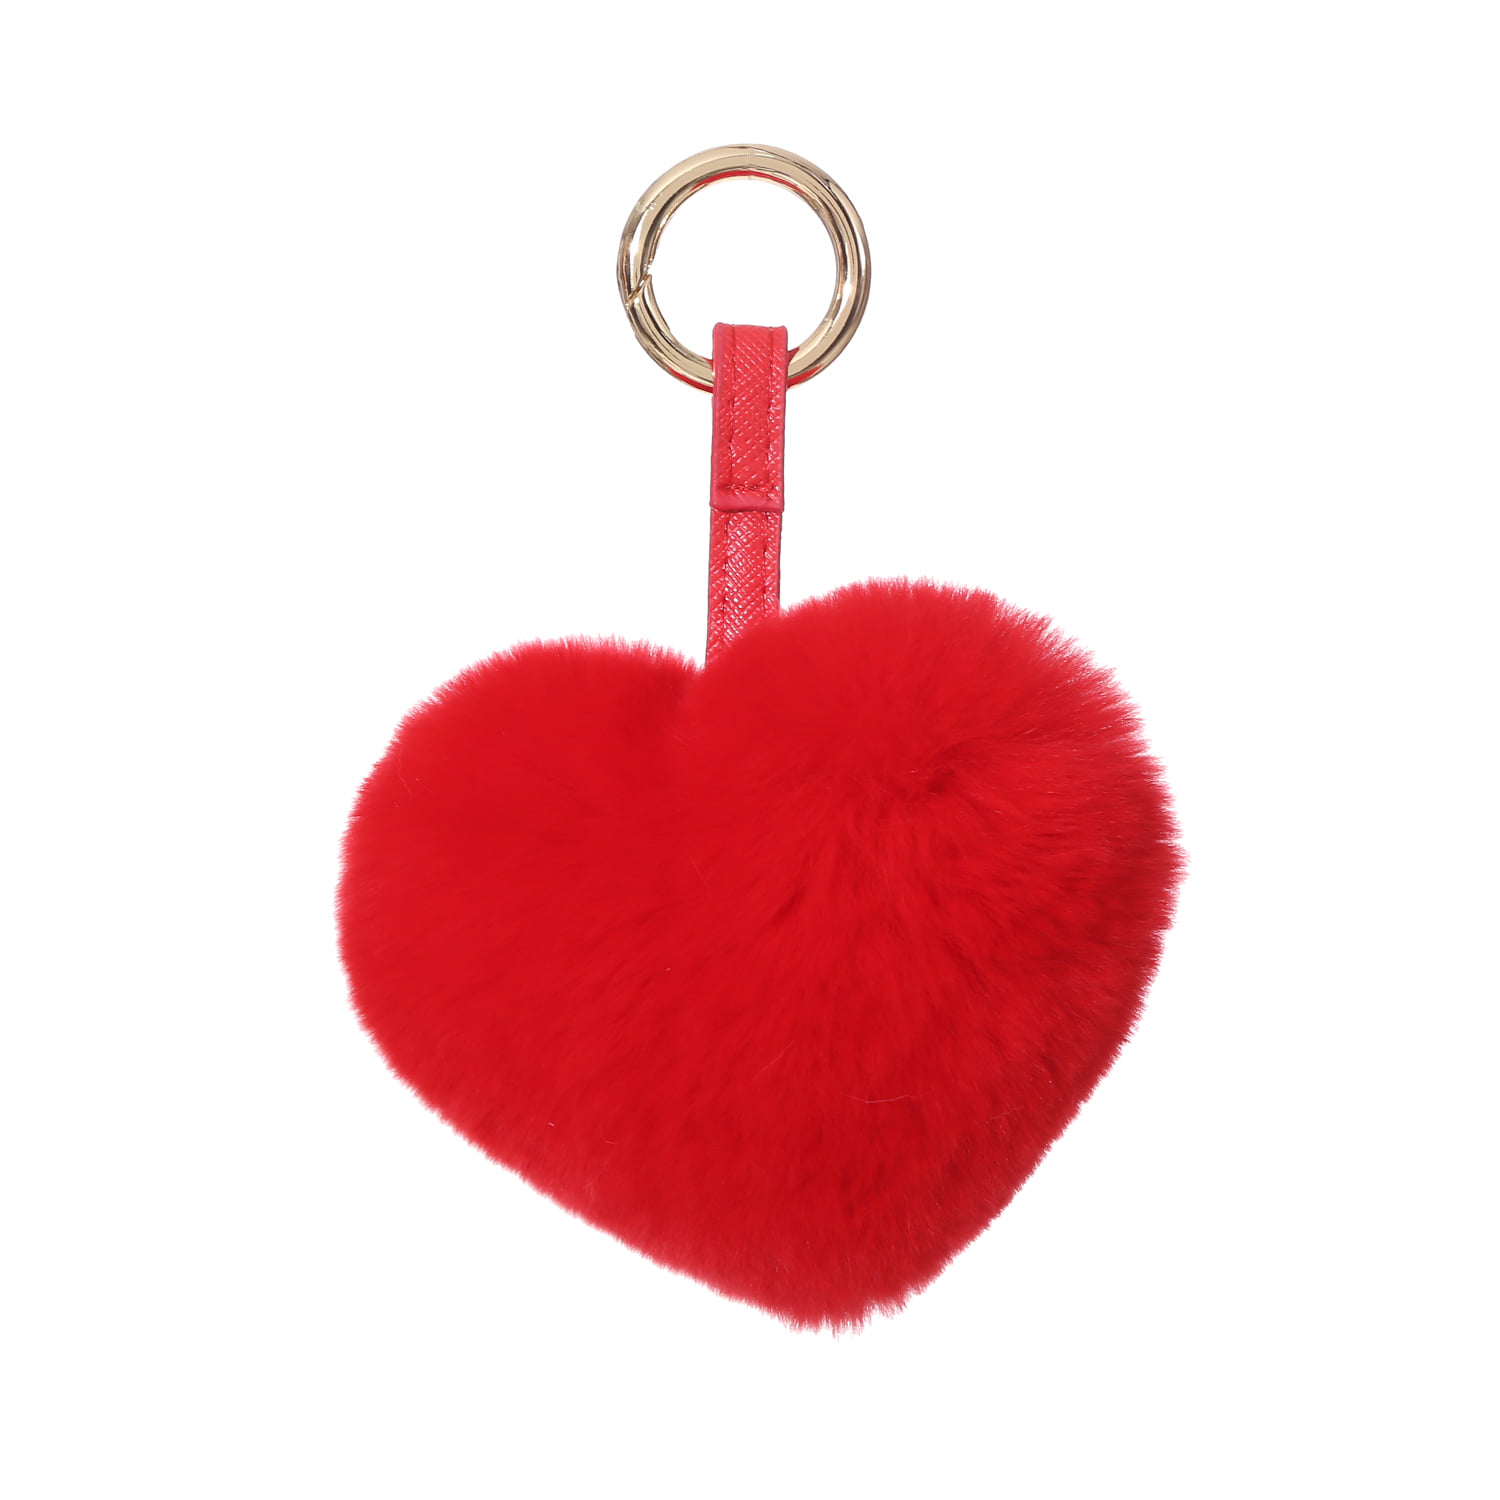 REX HEART KEYRINGRED